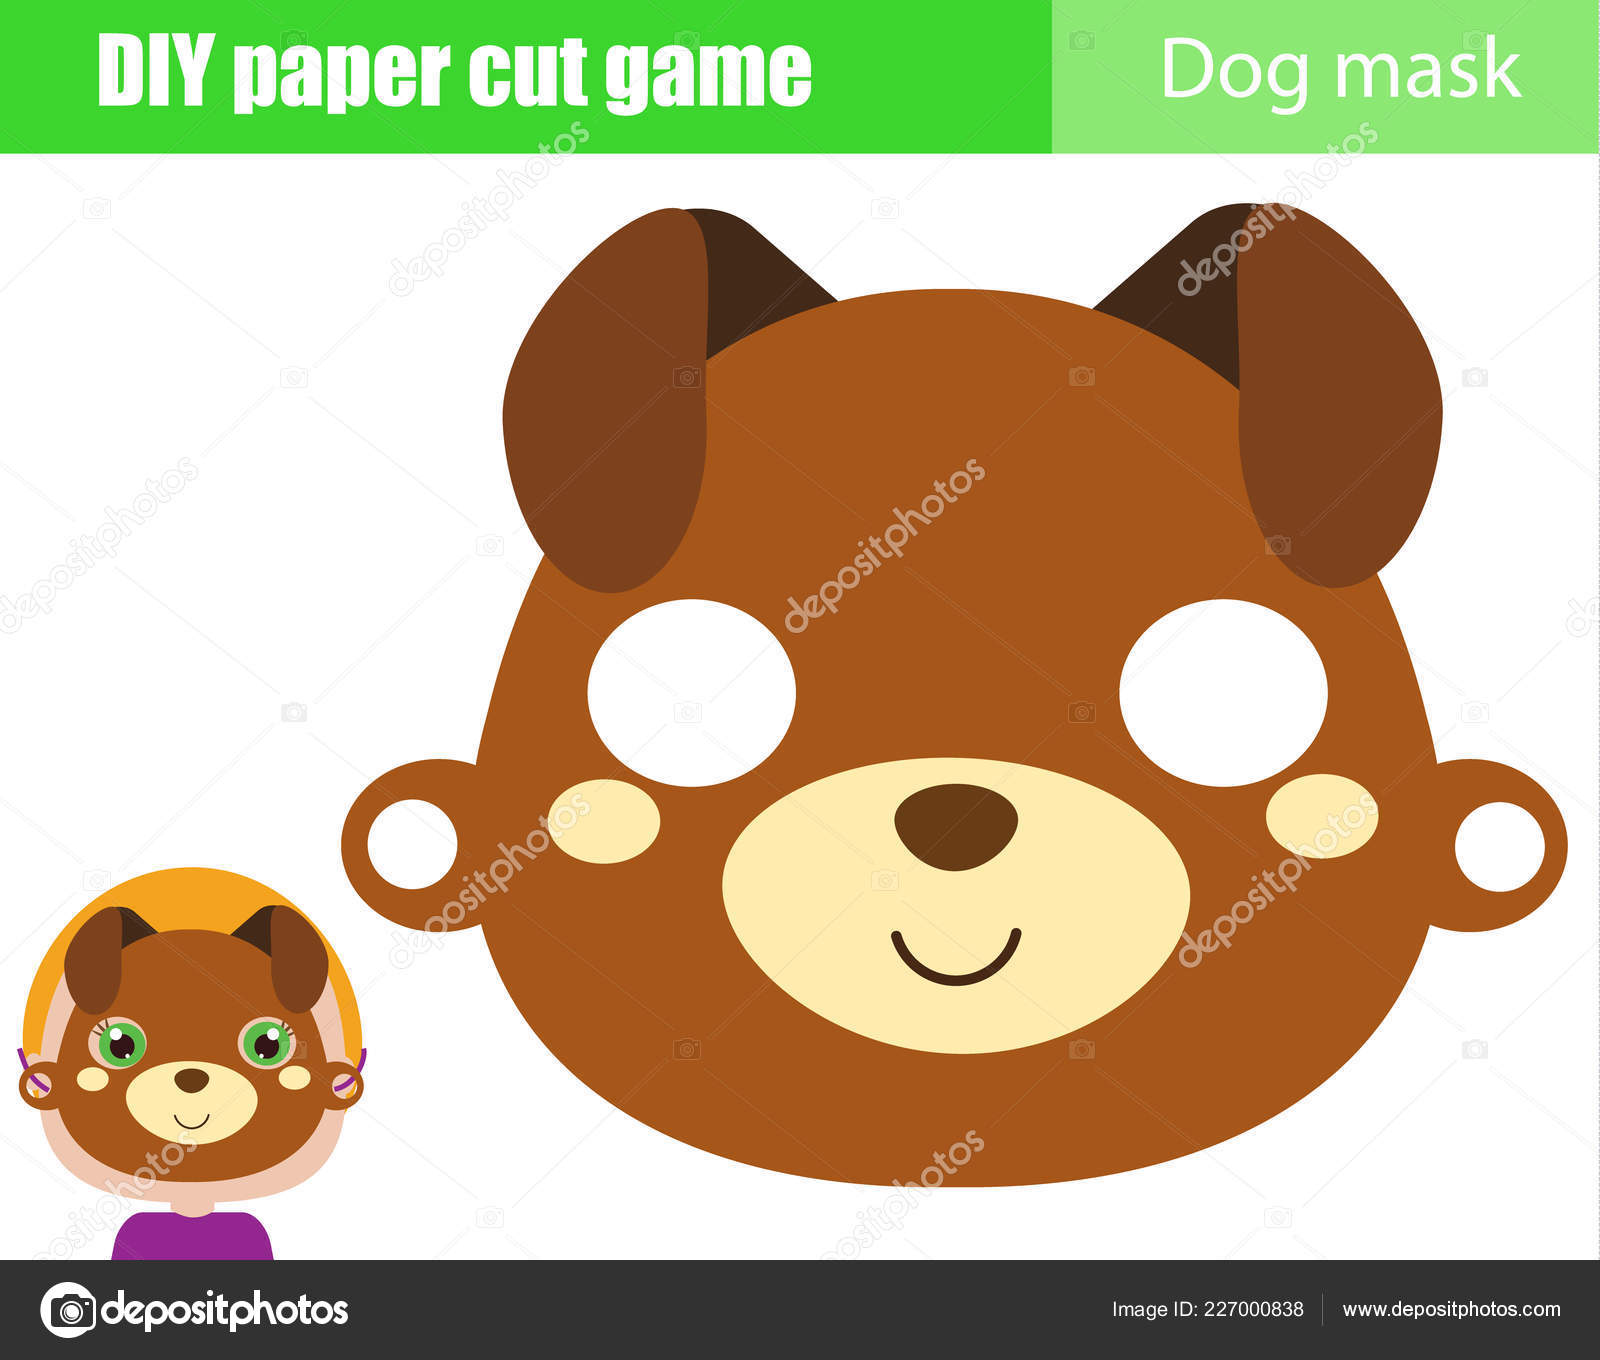 image relating to Dog Mask Printable identify Do it yourself Young children Enlightening Innovative Match Create Animal Celebration